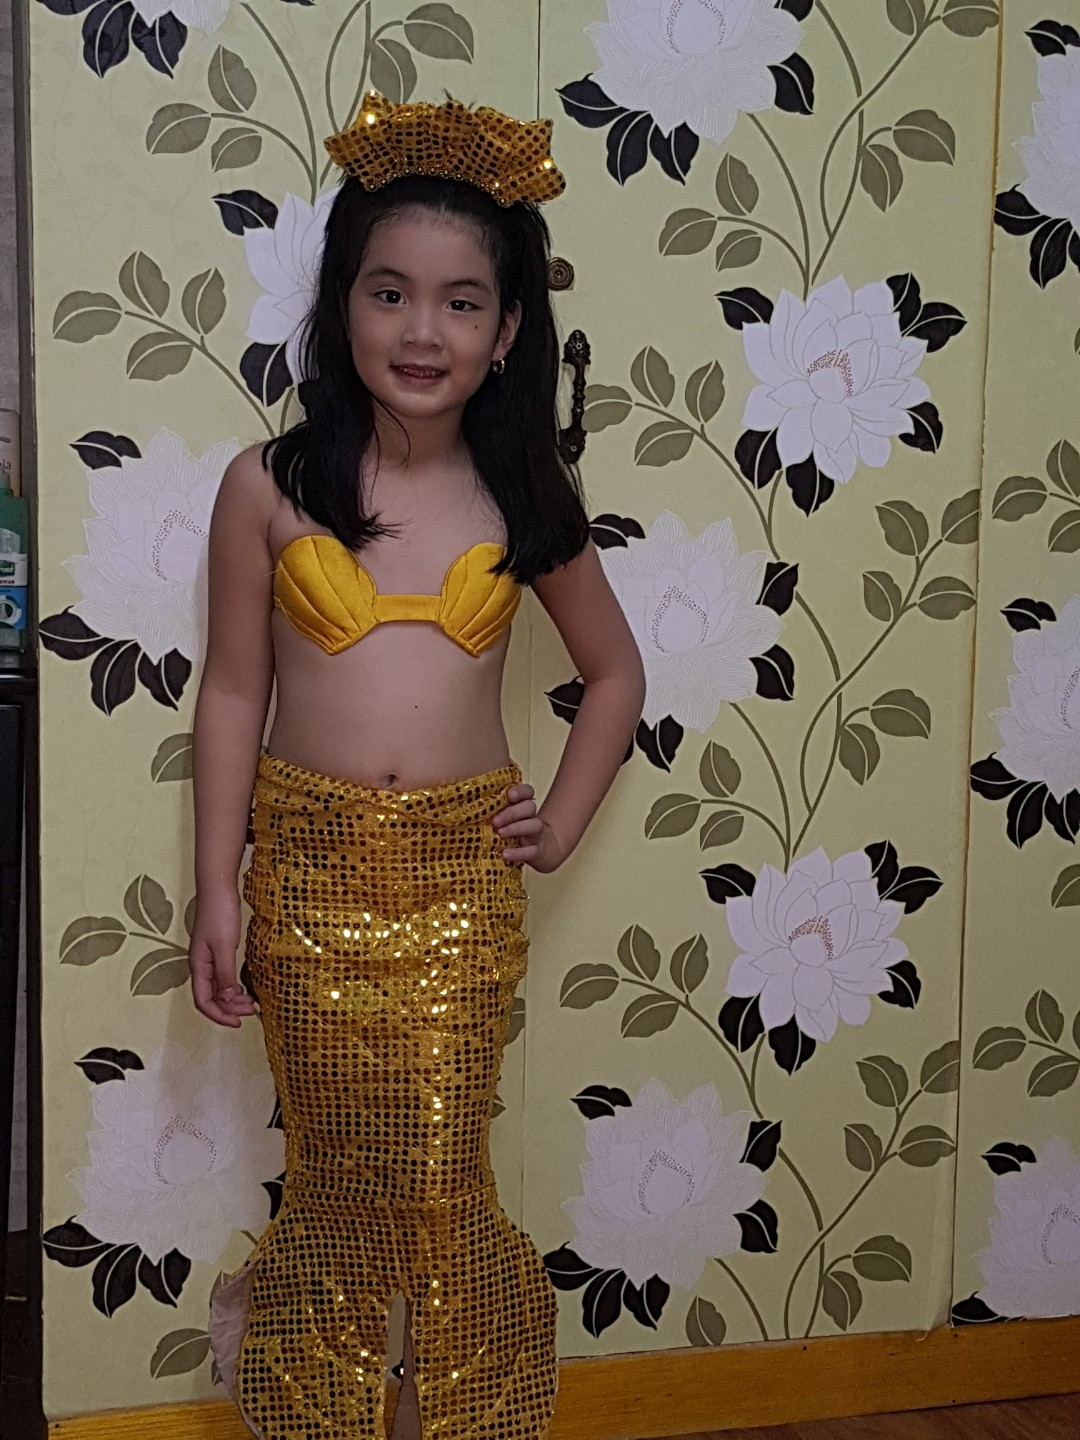 Mermaid photoshoot costume